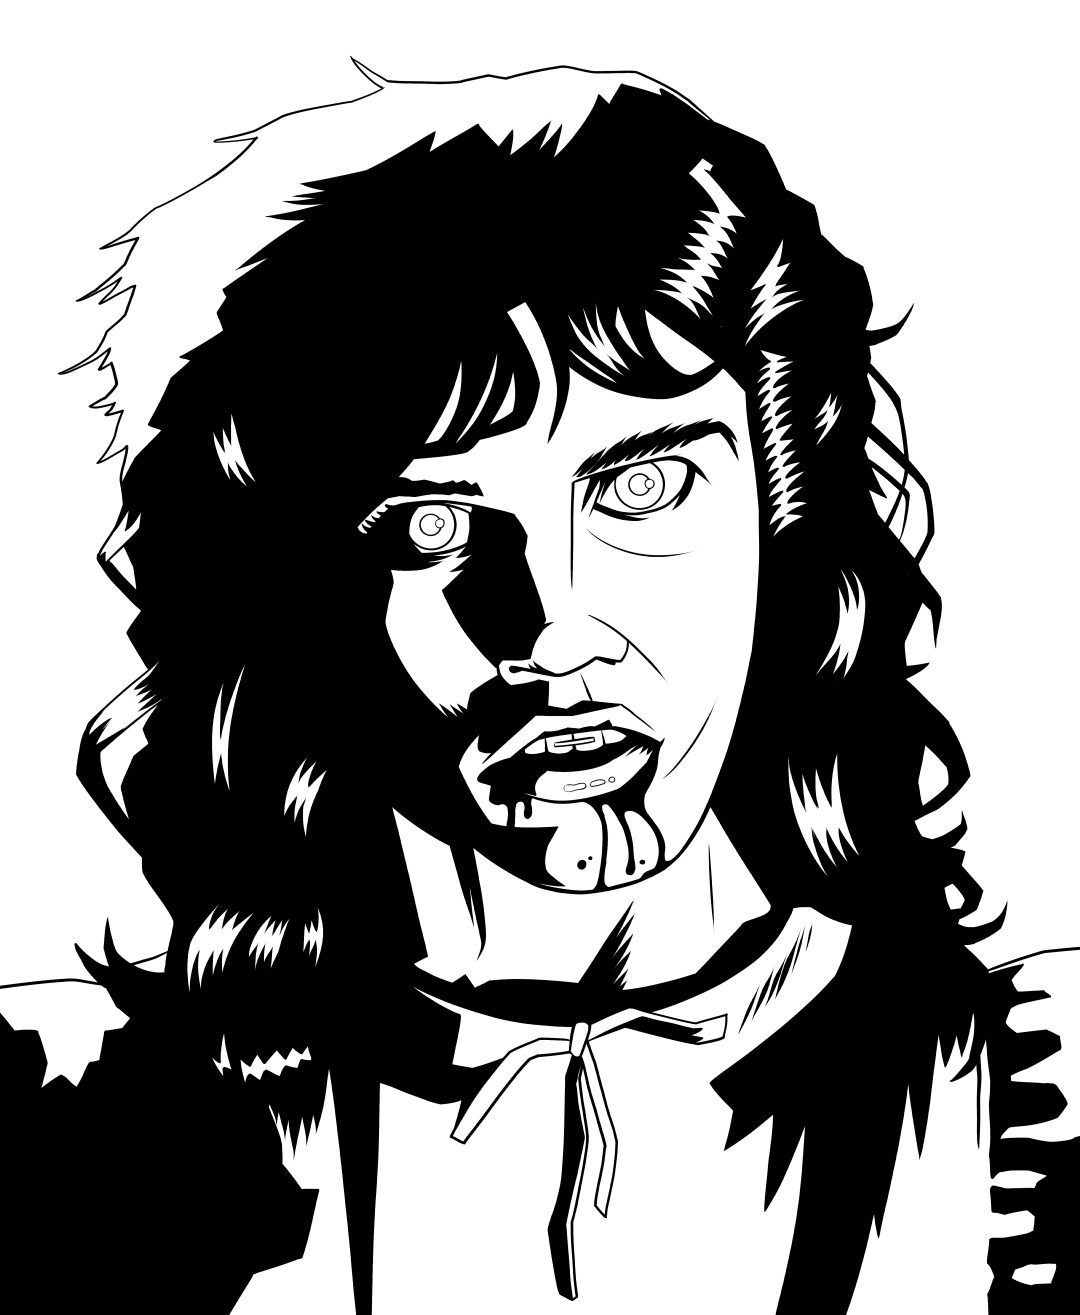 Ian Jepson — Inktober day 30: Zombie from Night of The Living.